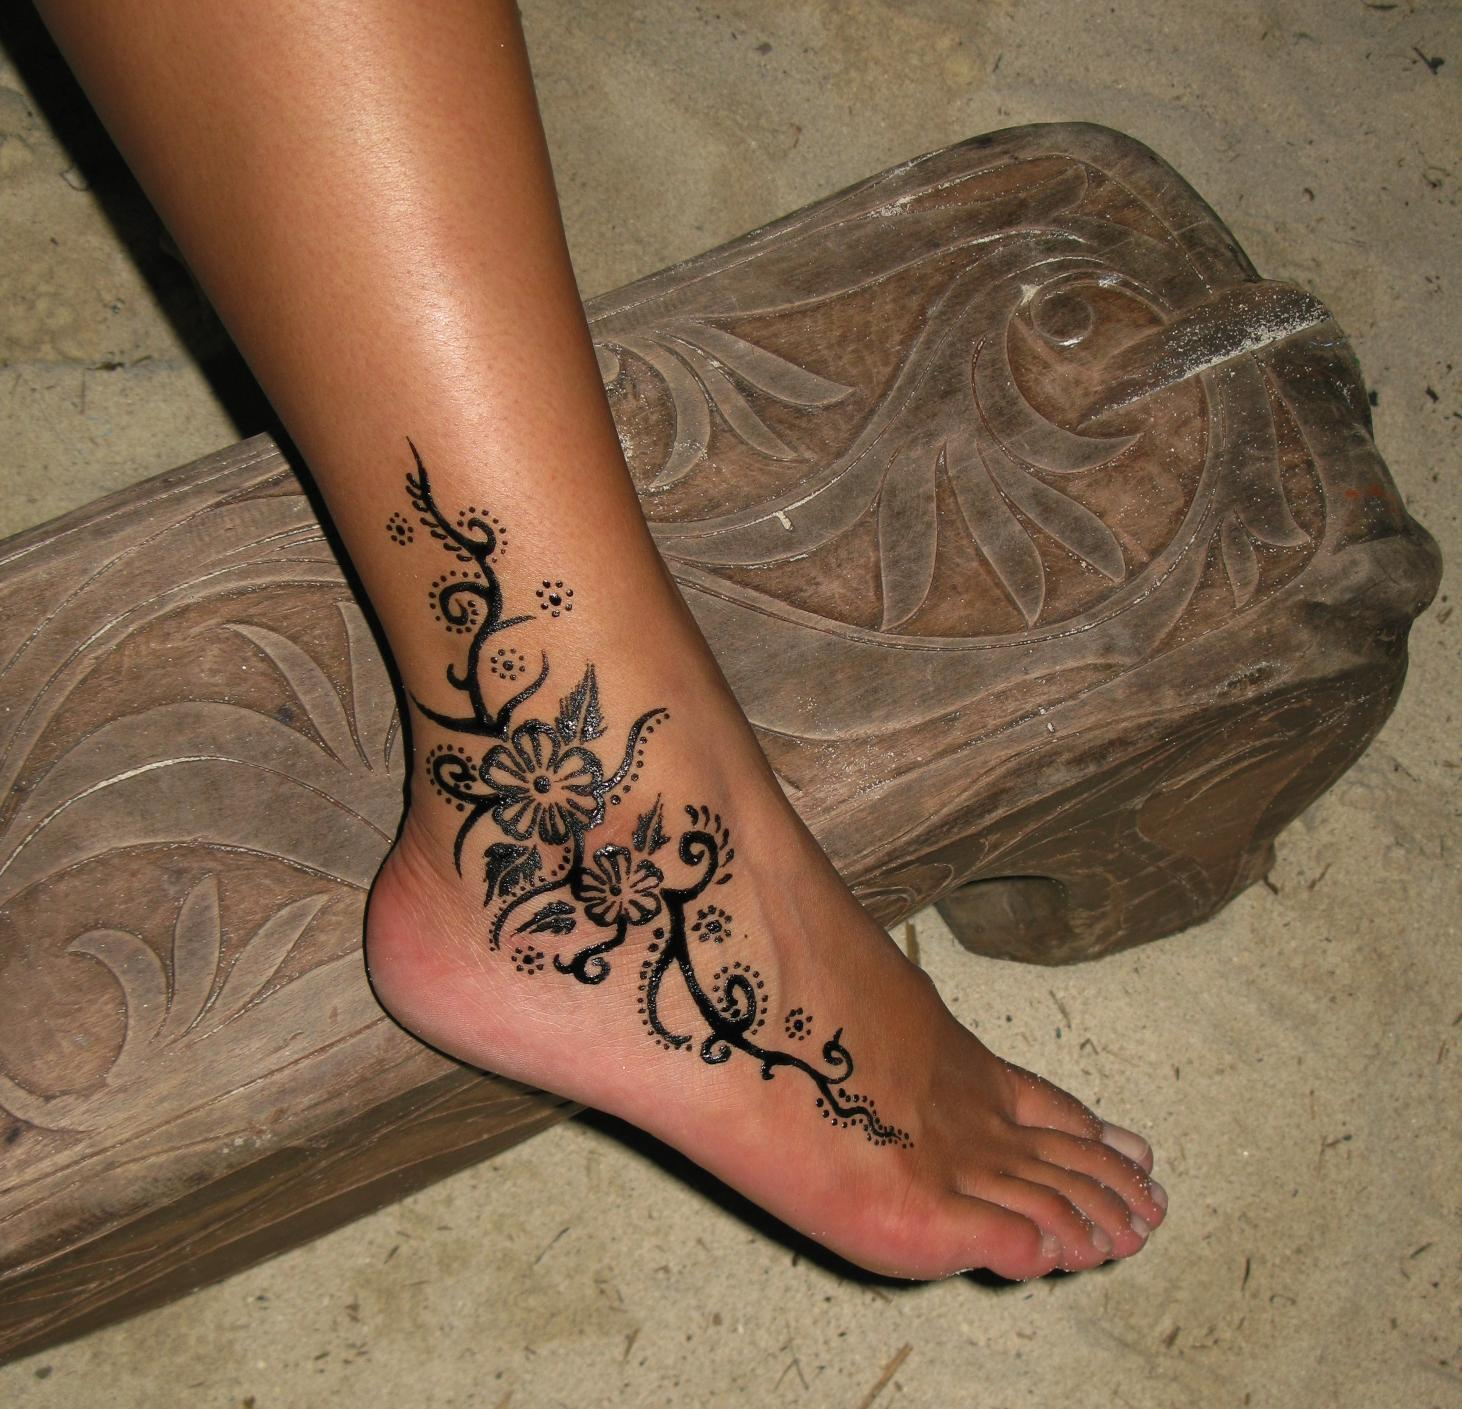 henna tattoos designs ideas and meaning tattoos for you